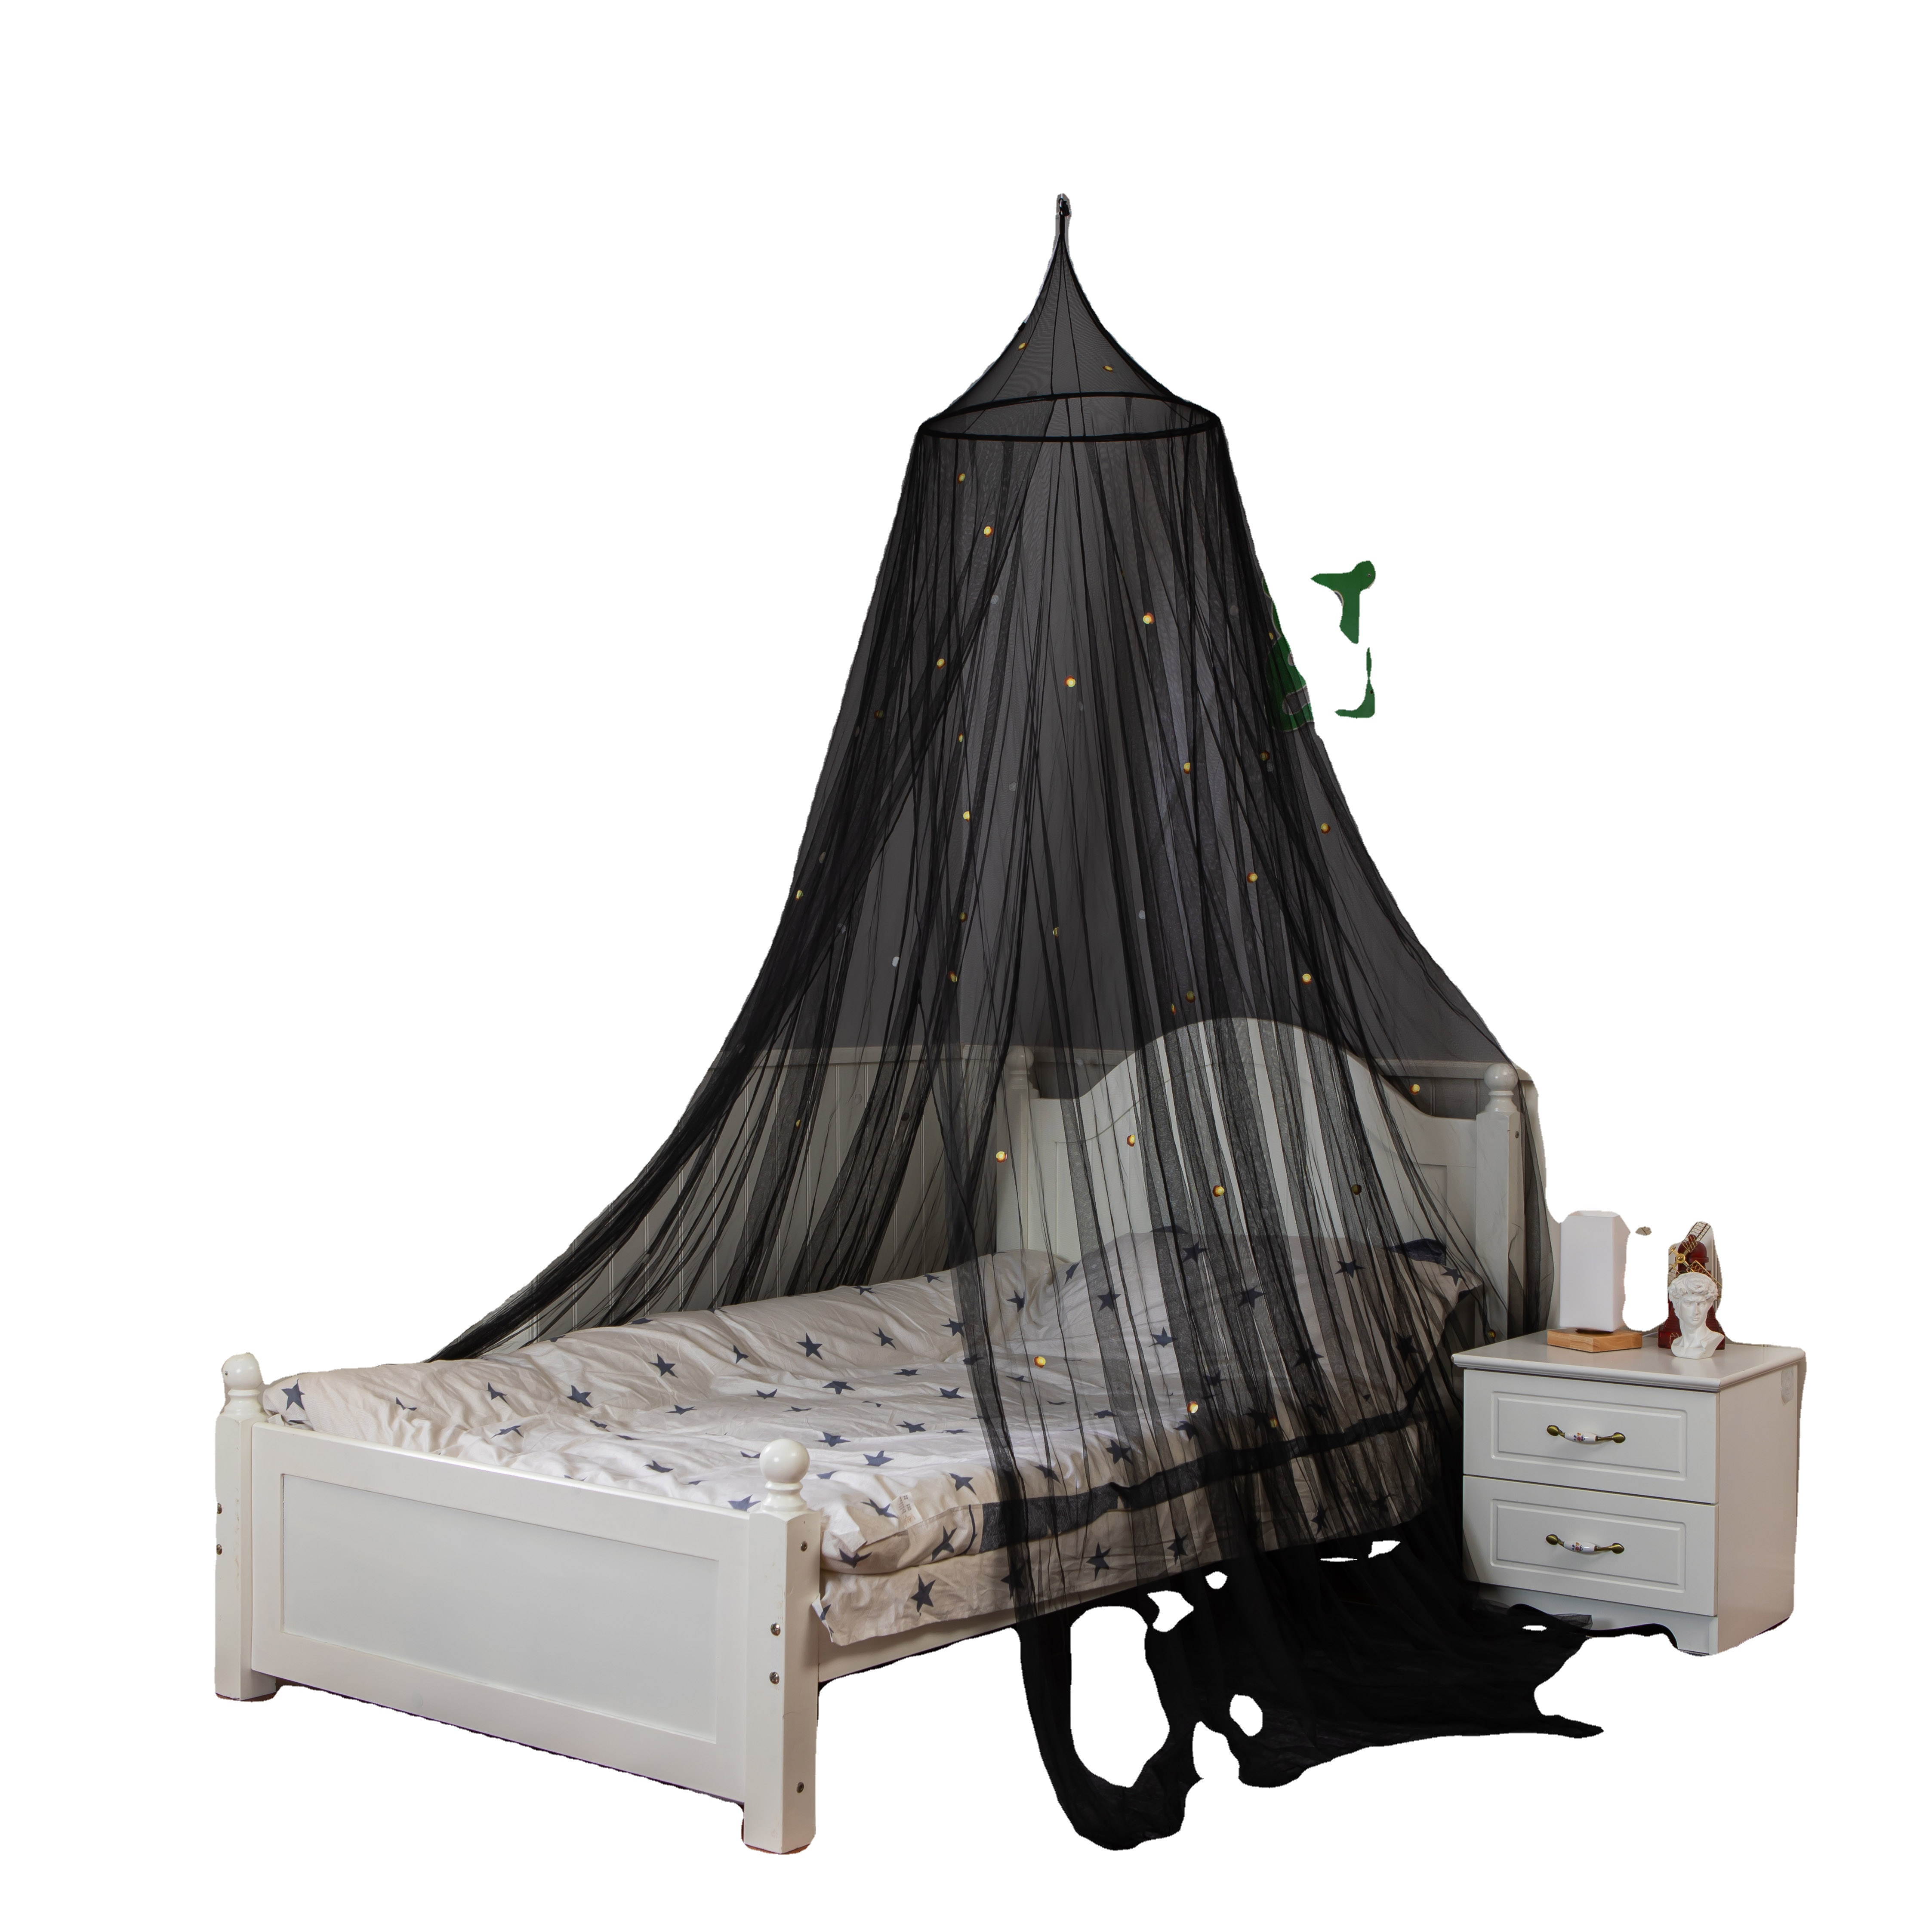 2020 New Product Glowing In The Dark Firefly Black Folding Mosquito Net